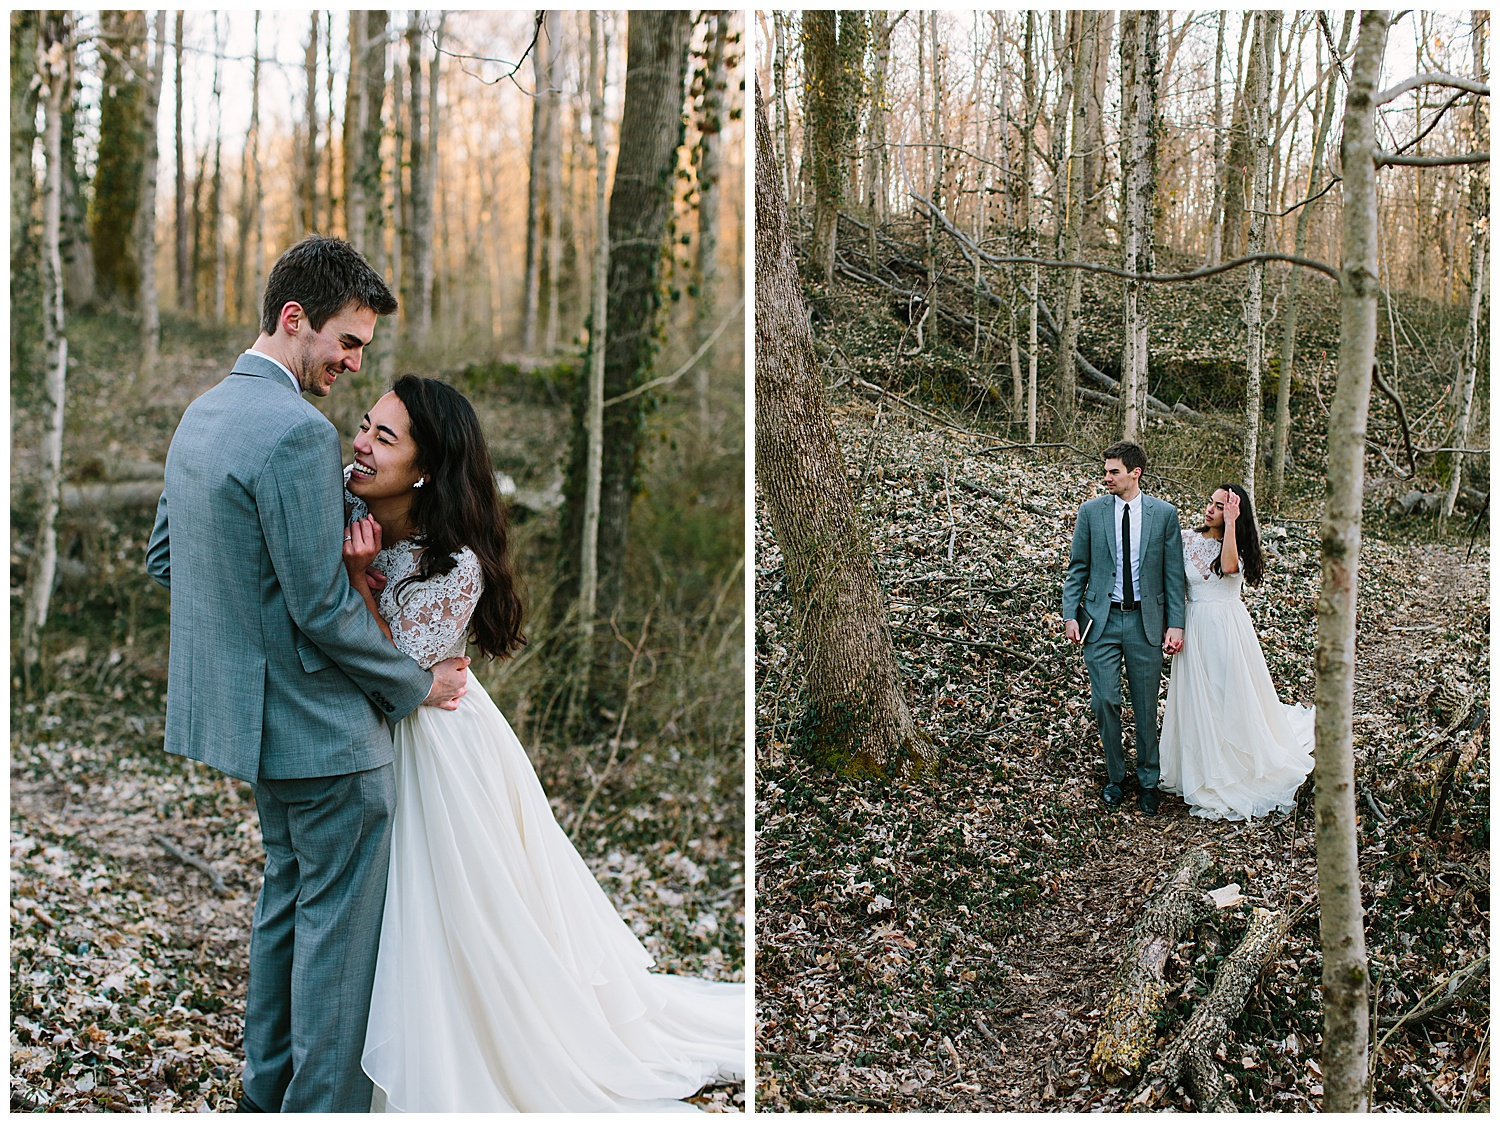 trent.and.kendra.photography.foxhollow.farm.elopement-59.jpg